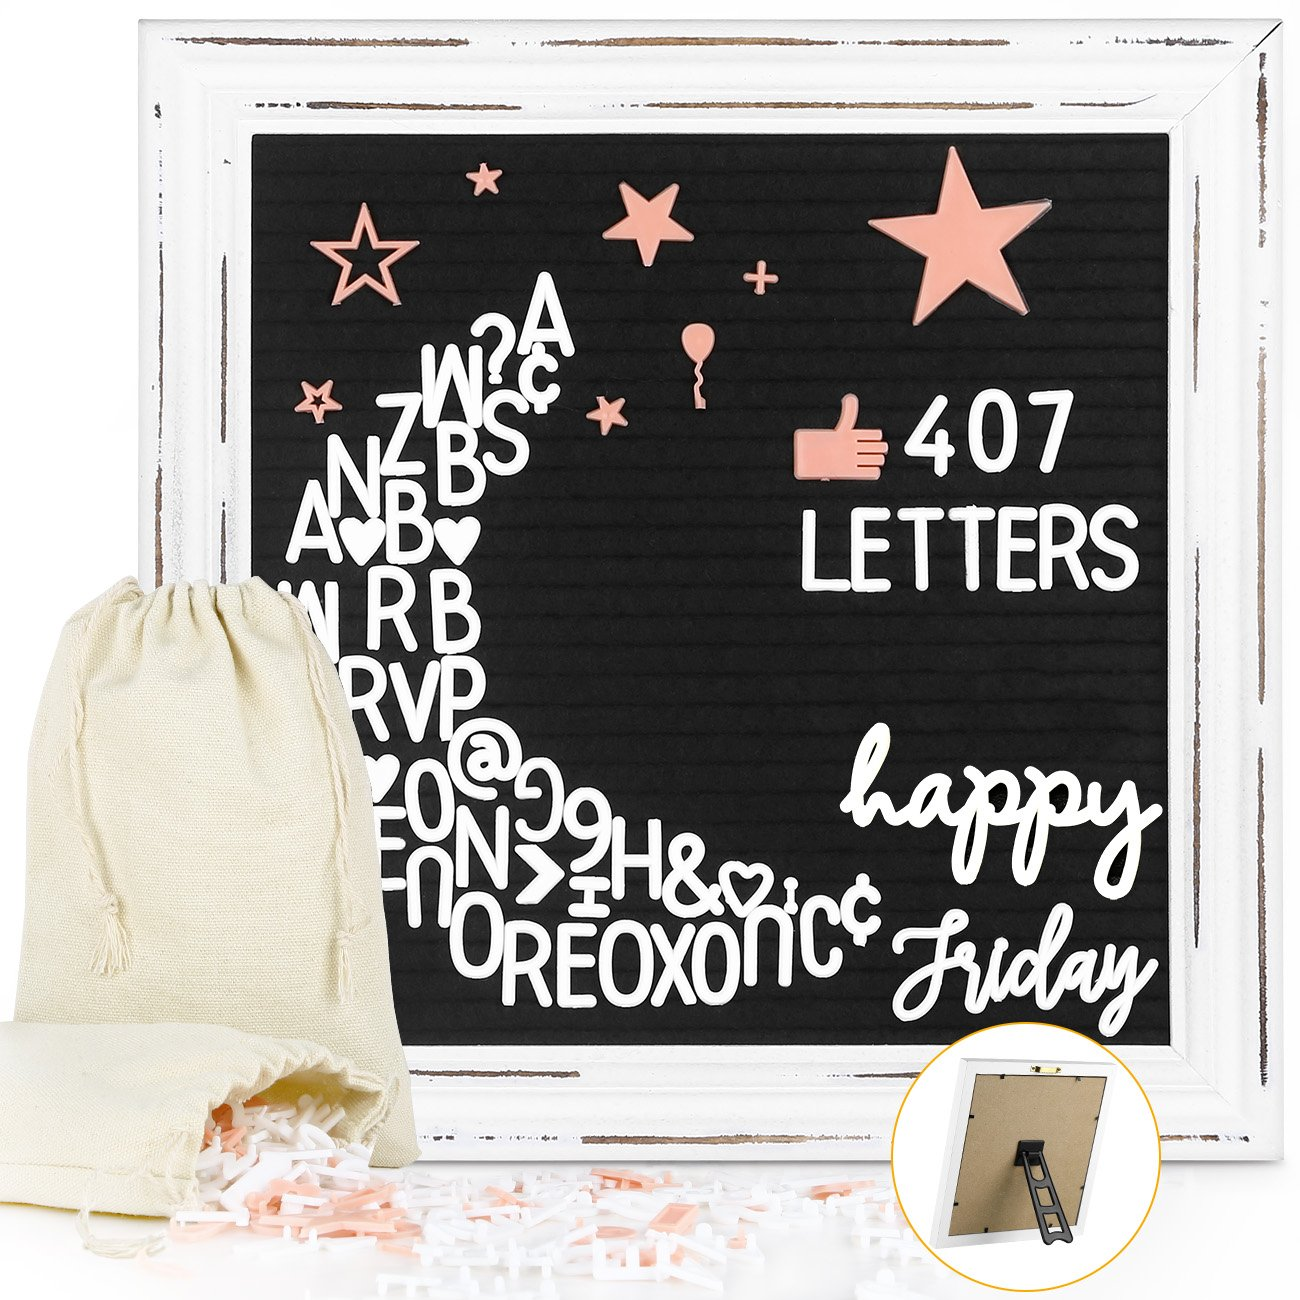 Black Felt Letter Board 10x10 Inches Rustic White Wood Farmhouse Vintage Frame, Antique Changeable Message Boards with 407 Pre-Cut Plastic Letters Cursive Words, and 2 Canvas Organizer Bags, Easyacc